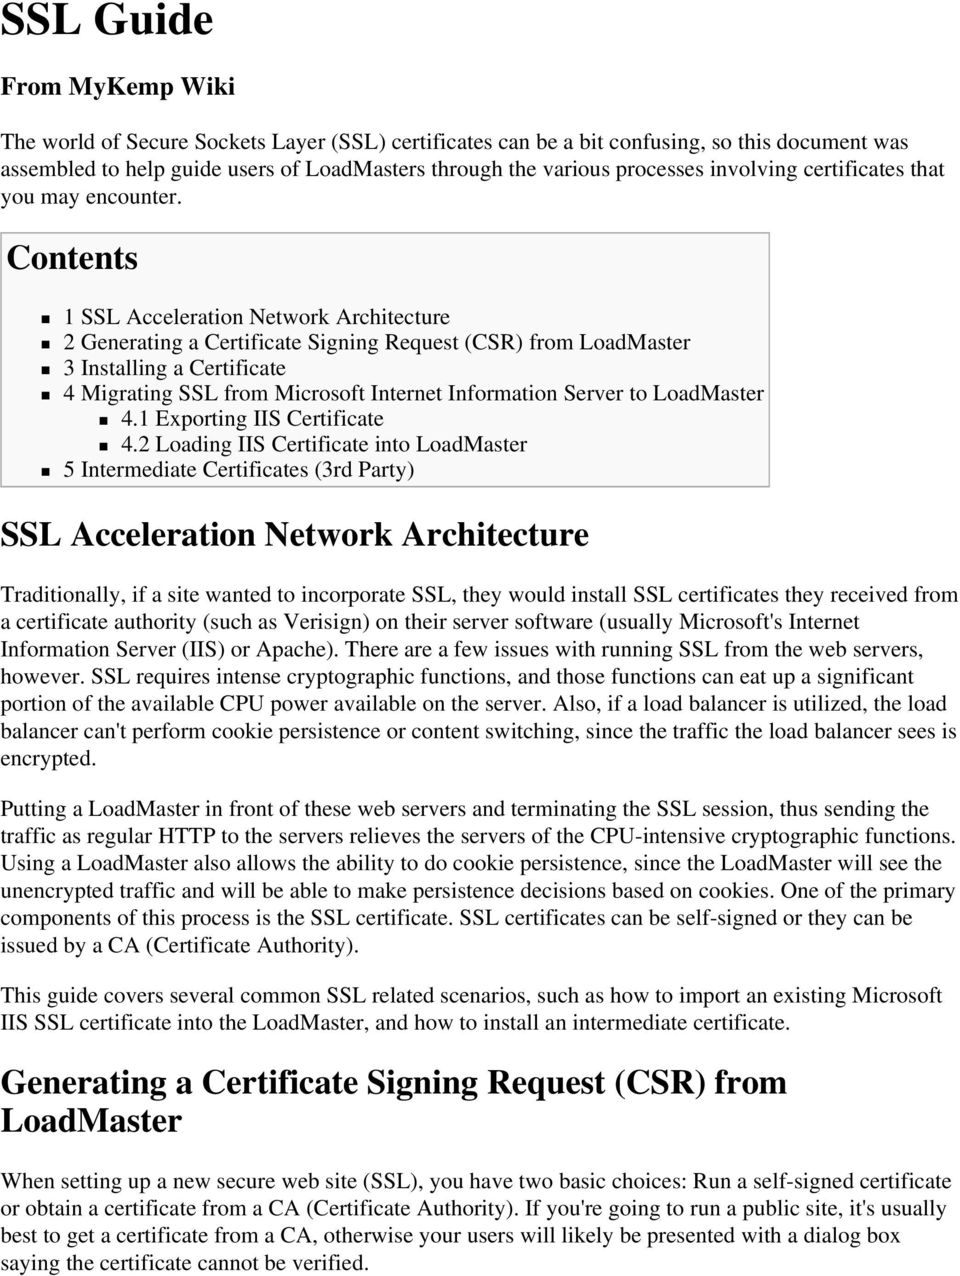 Generating a Certificate Signing Request (CSR) from